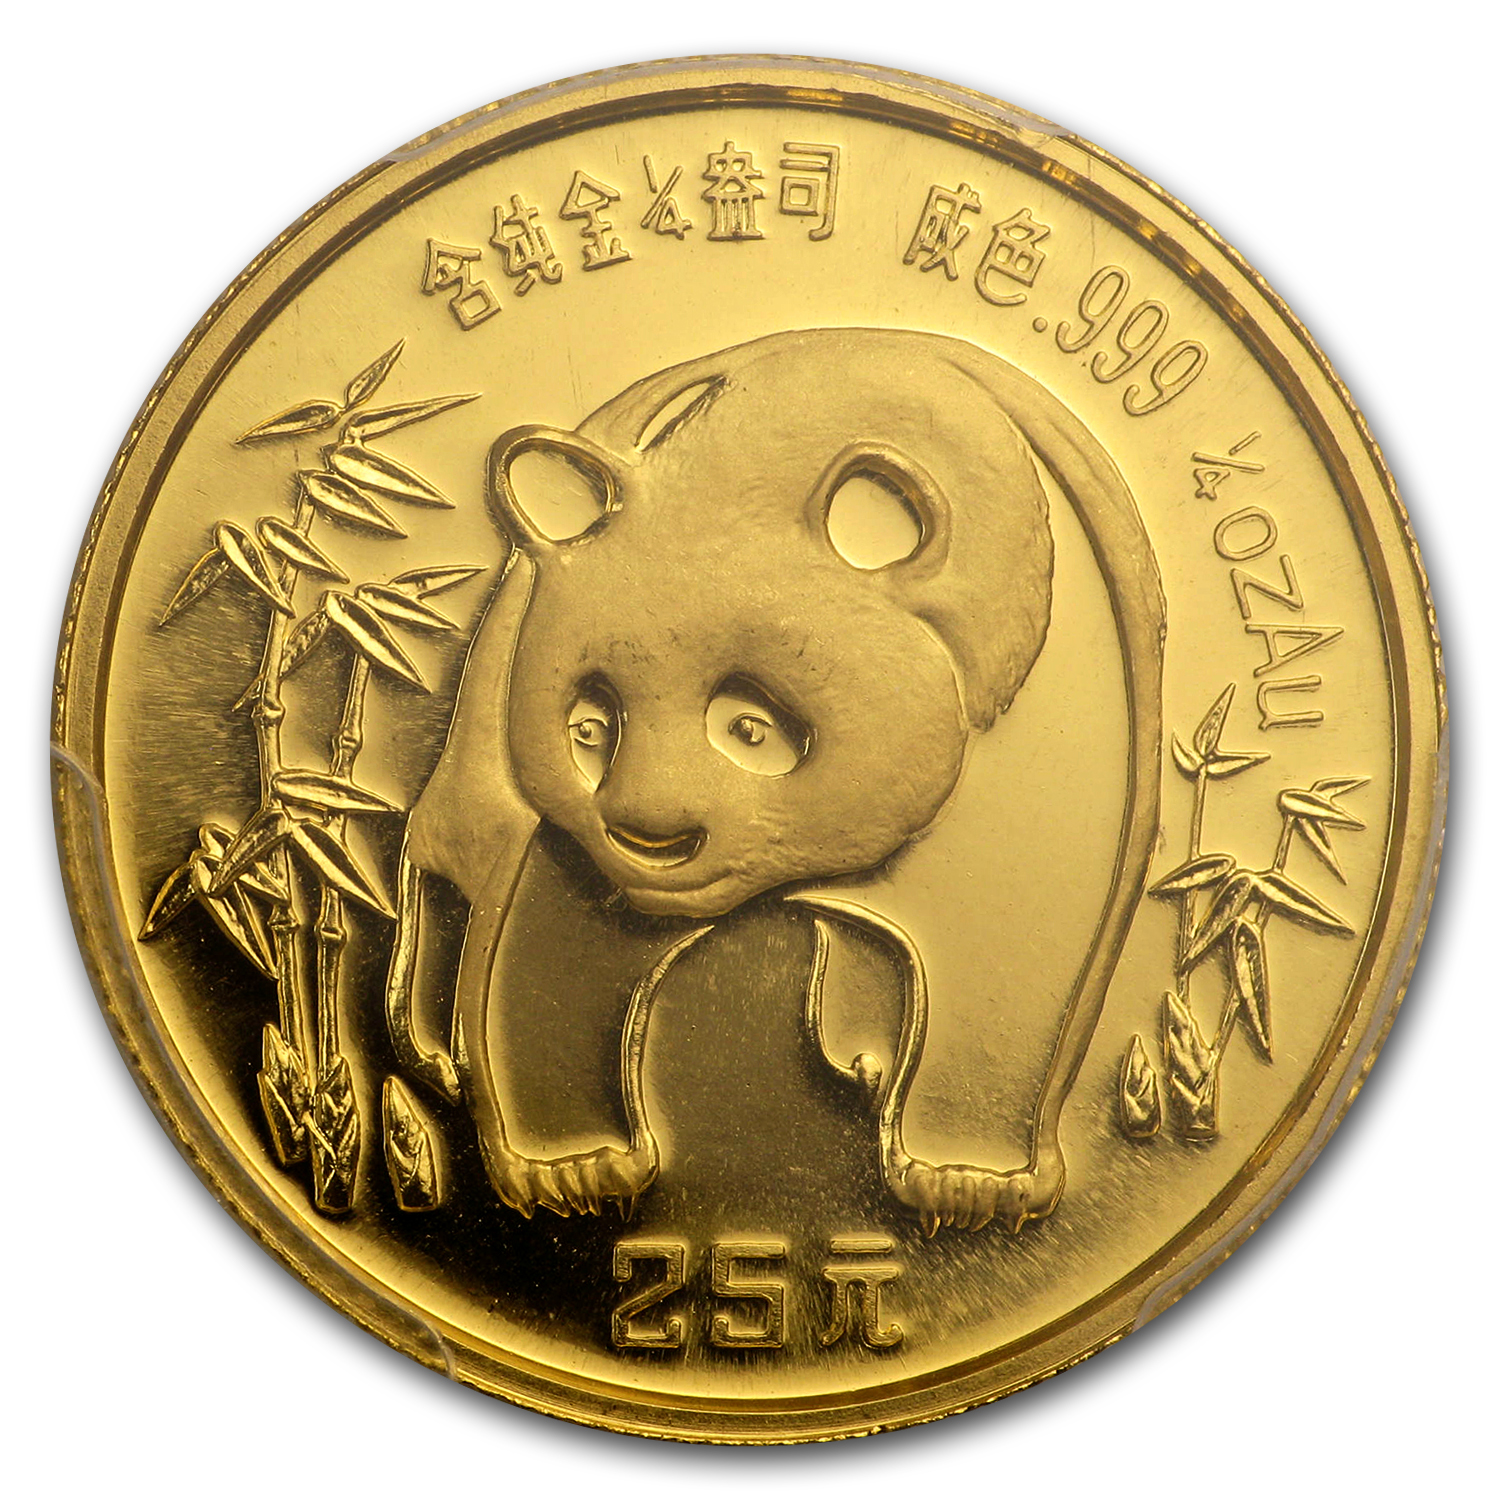 1986 China 1/4 oz Gold Panda MS-69 PCGS